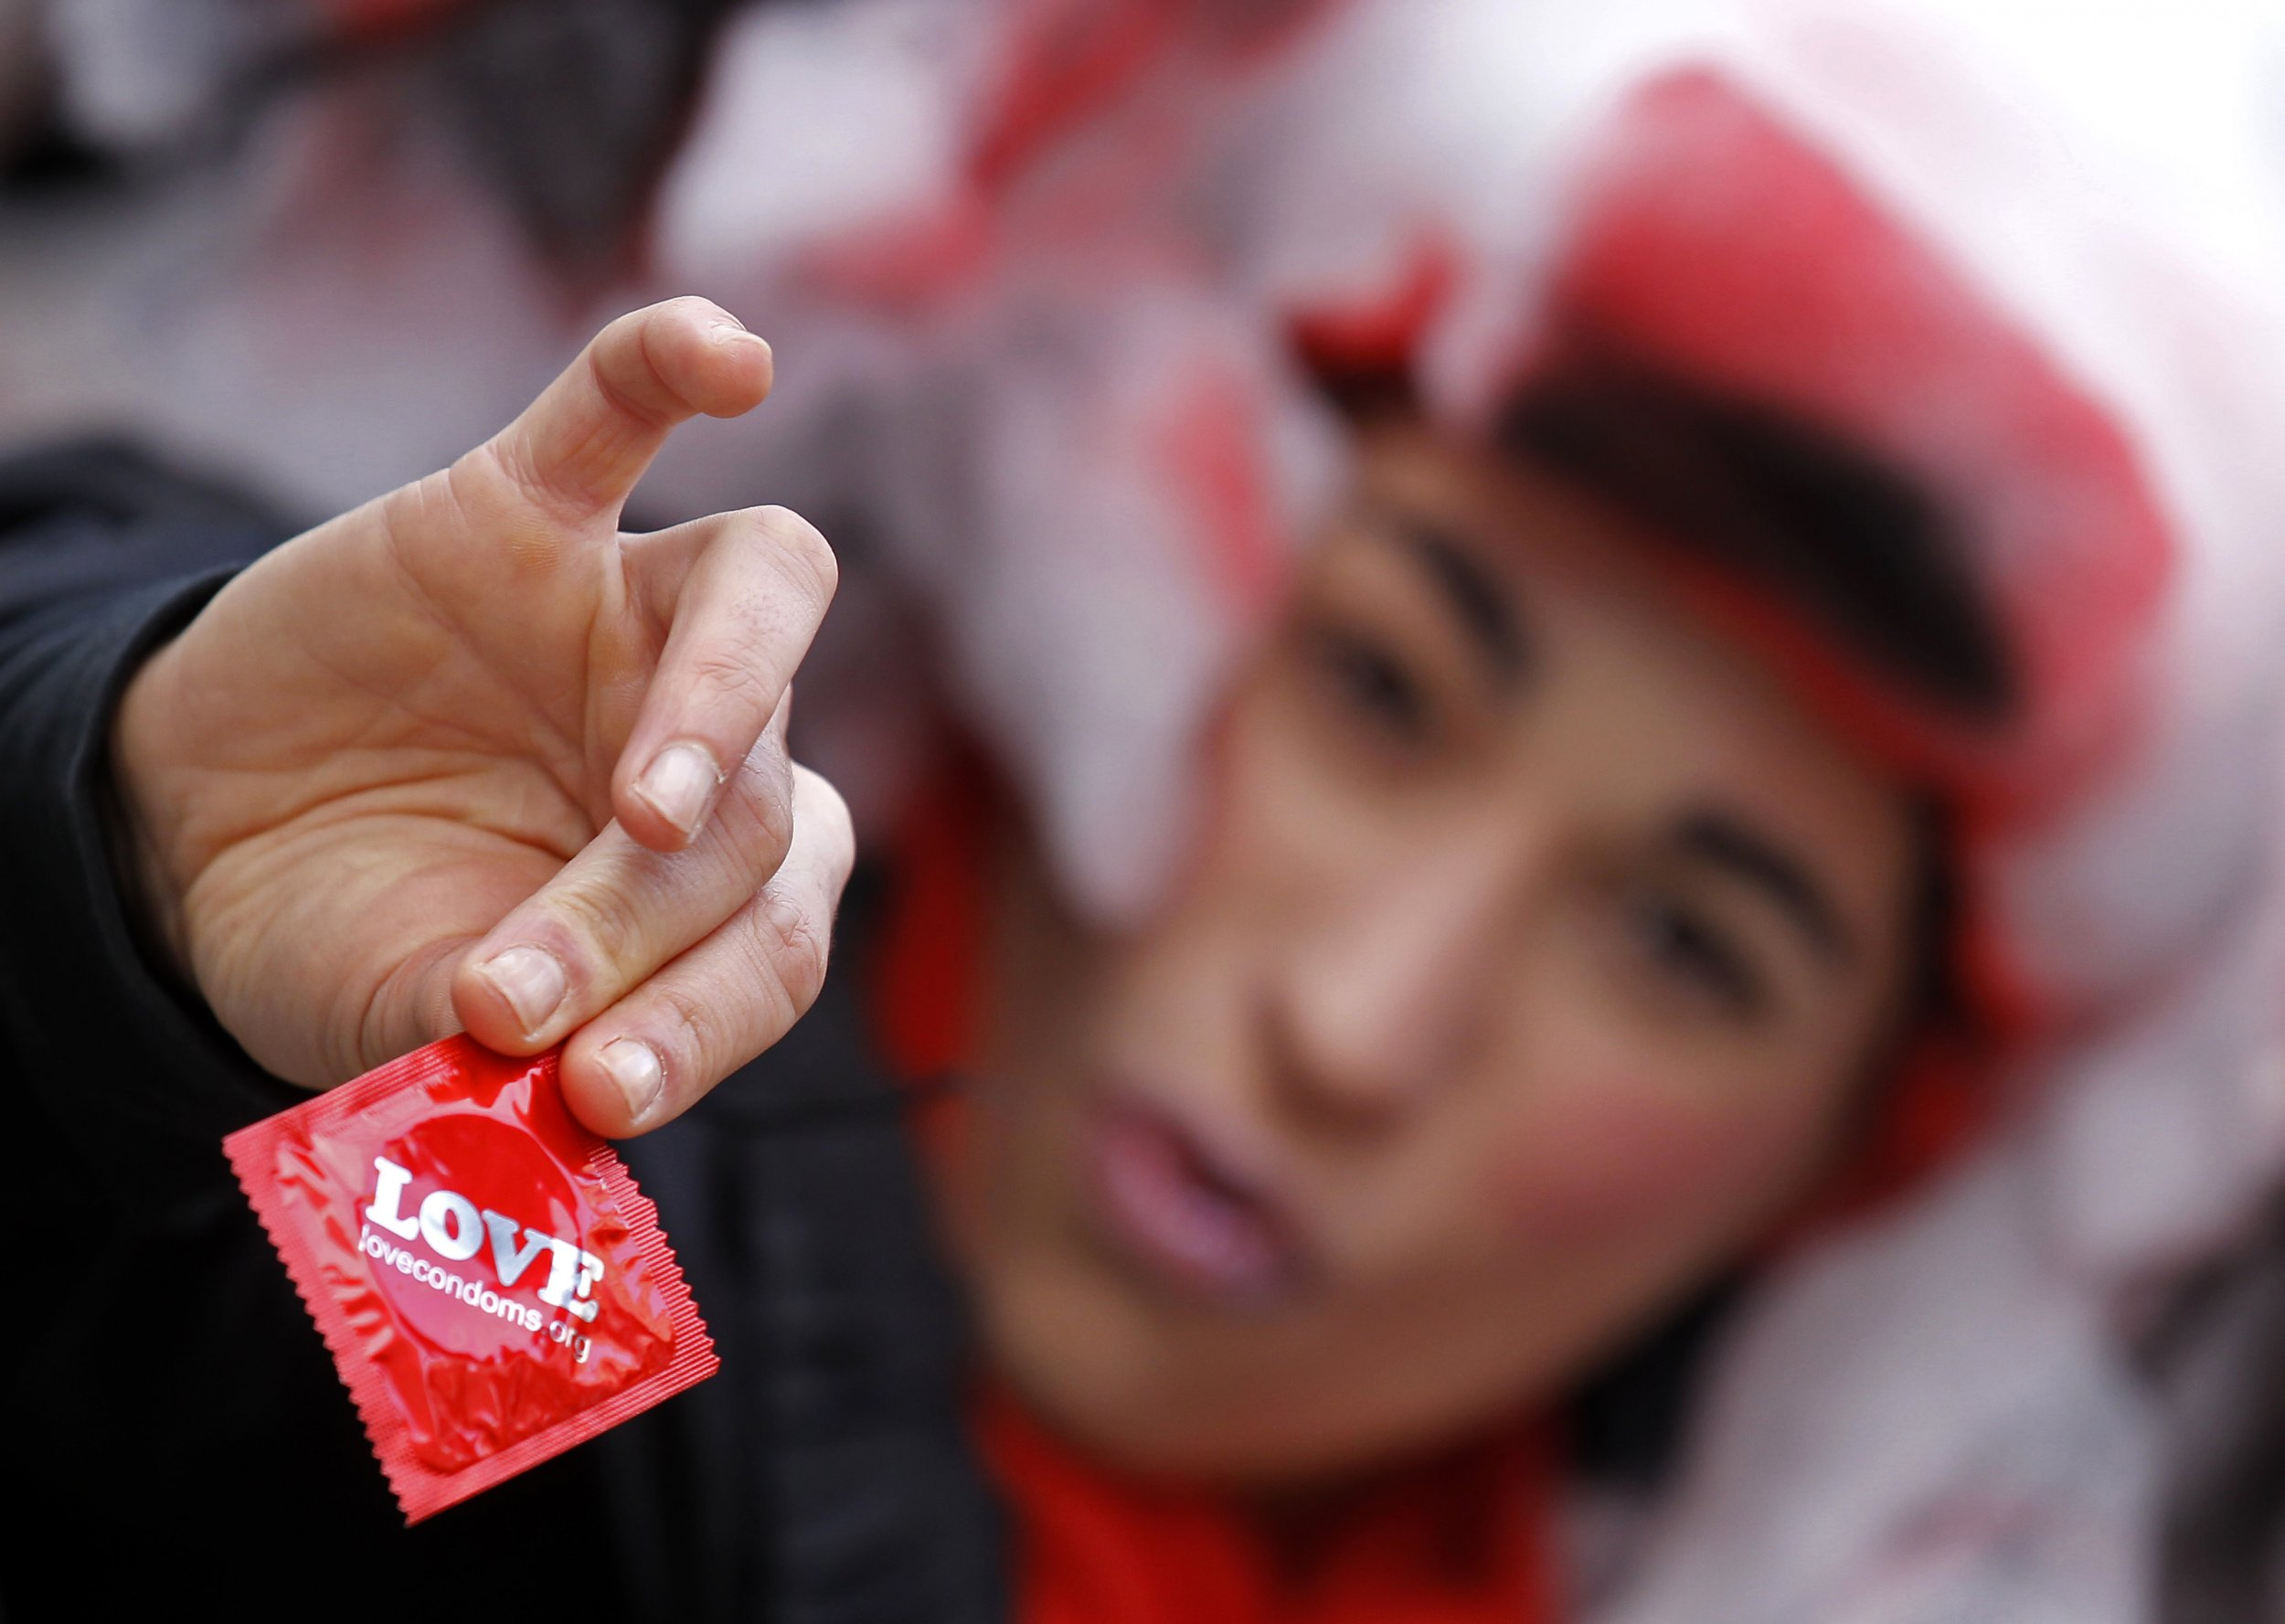 Circus performer holds condom